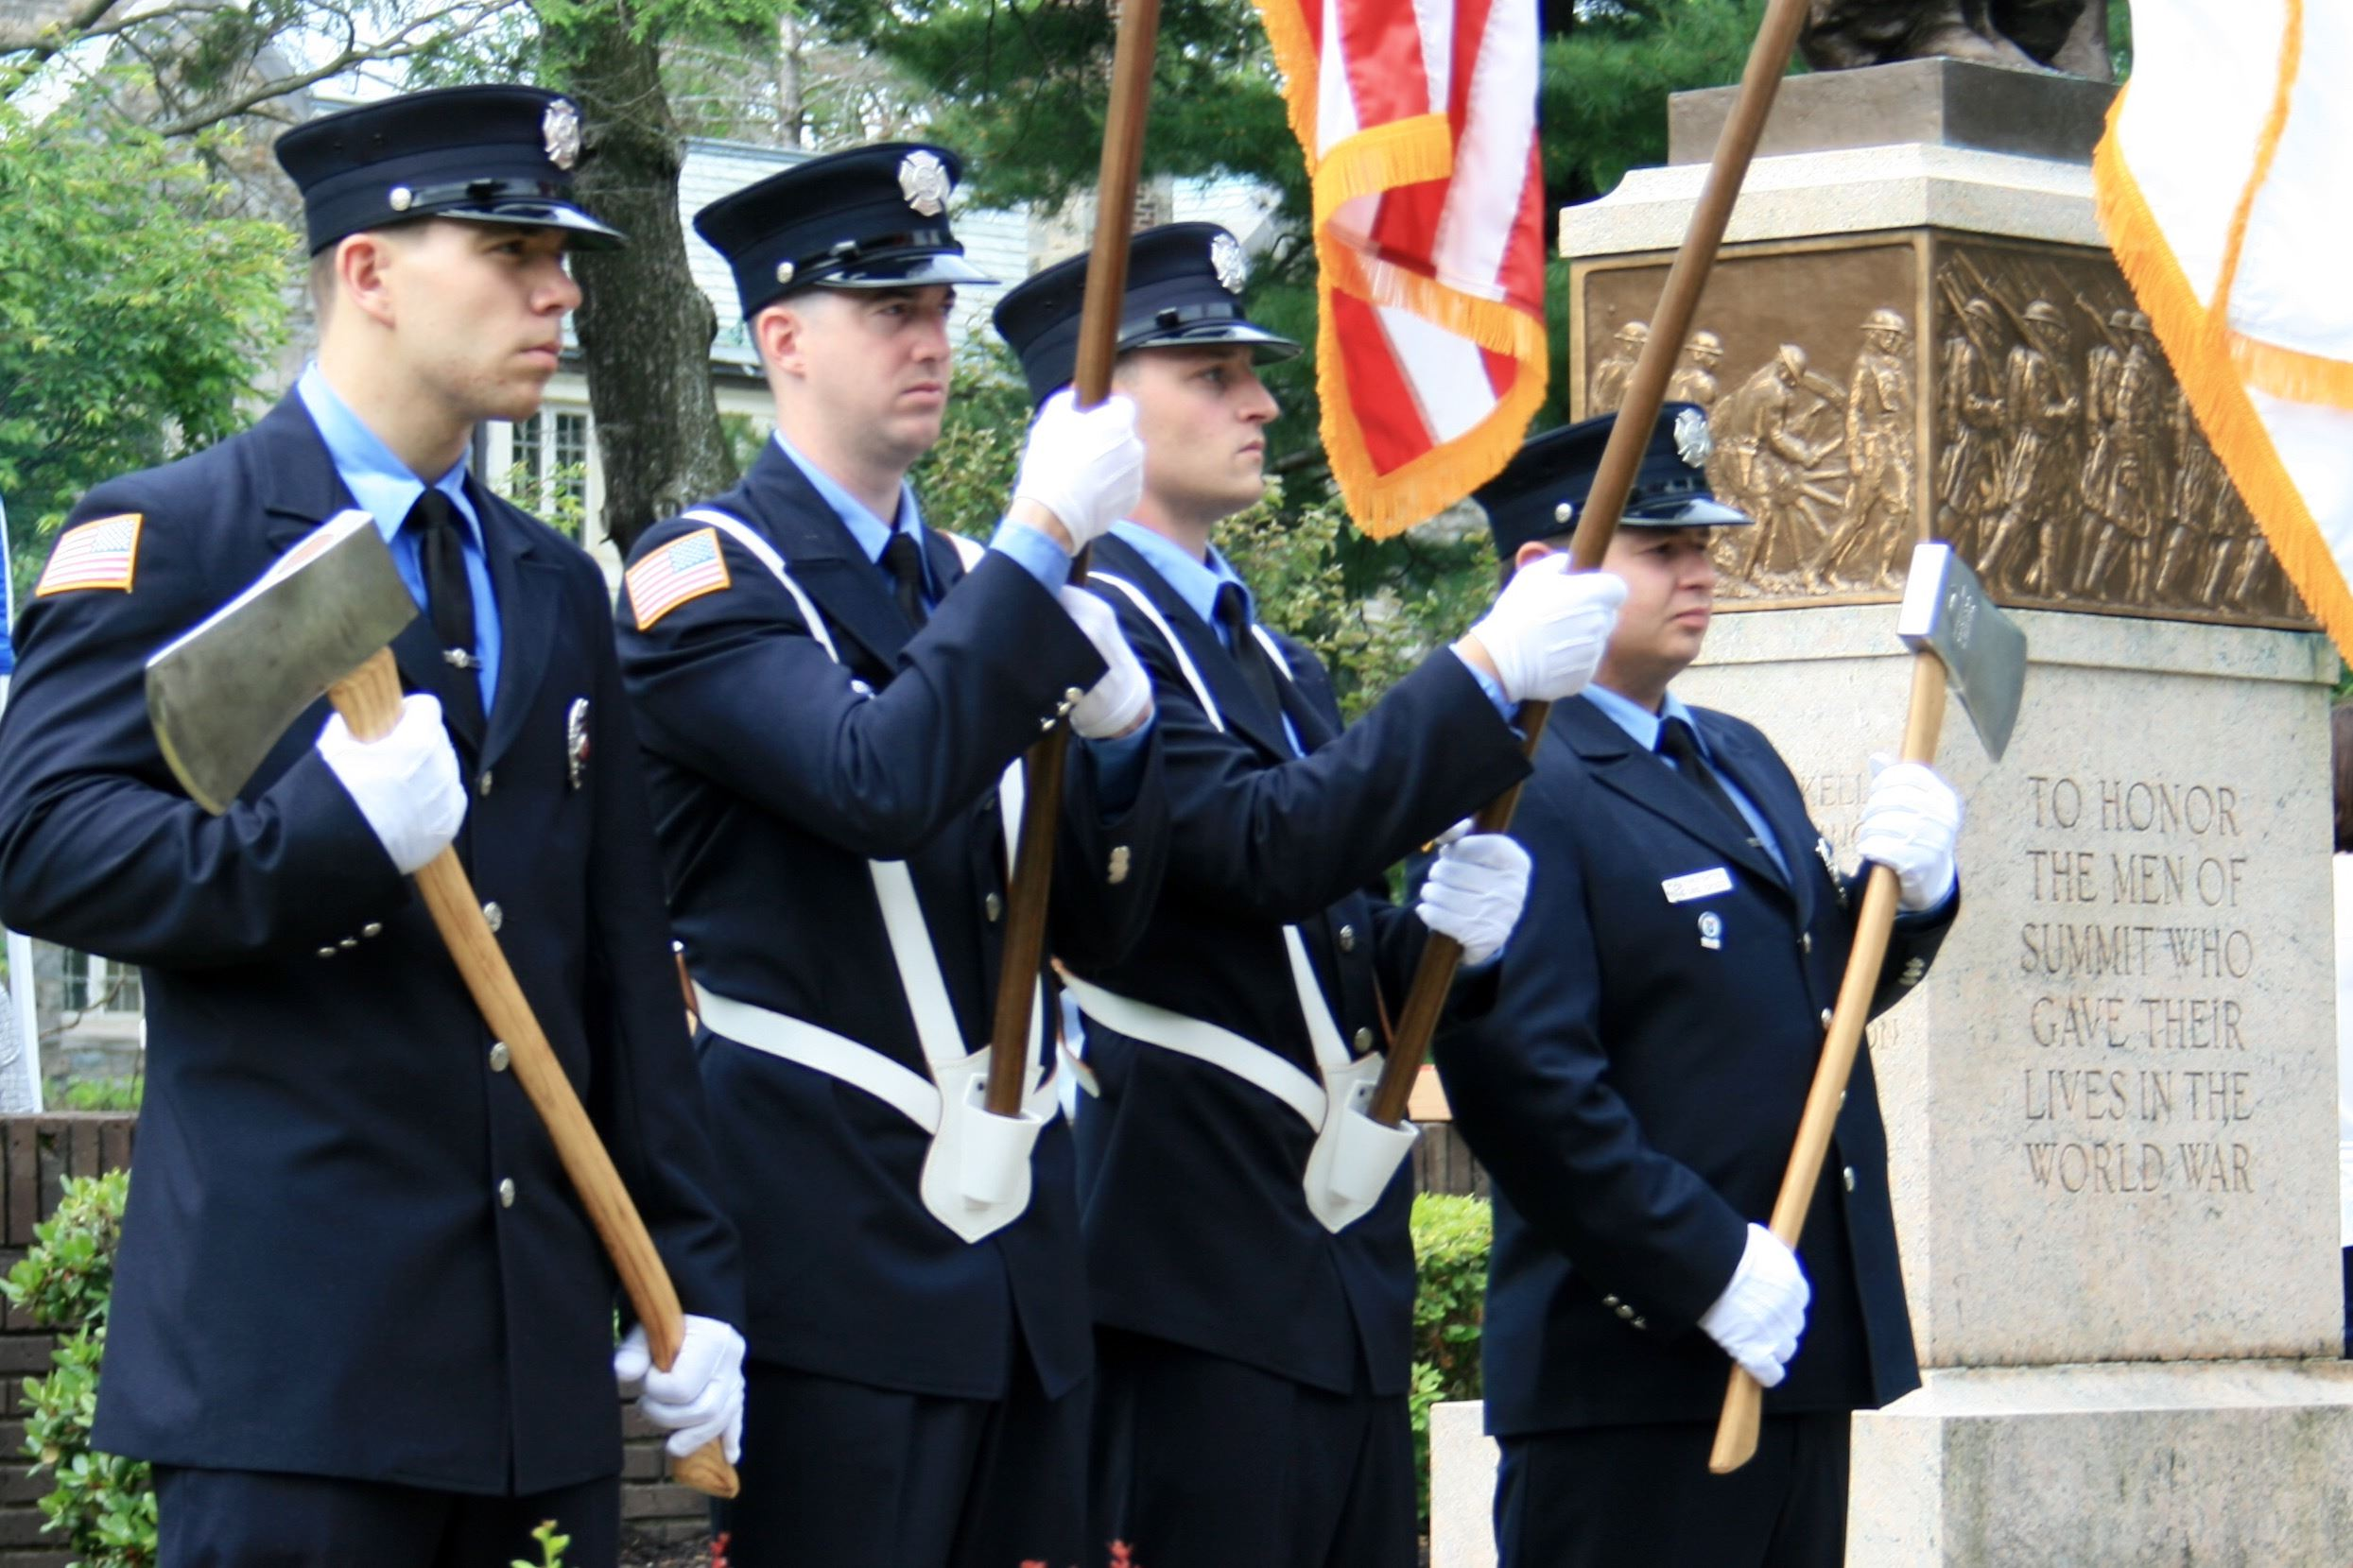 FD Memorial Day Honor Guard